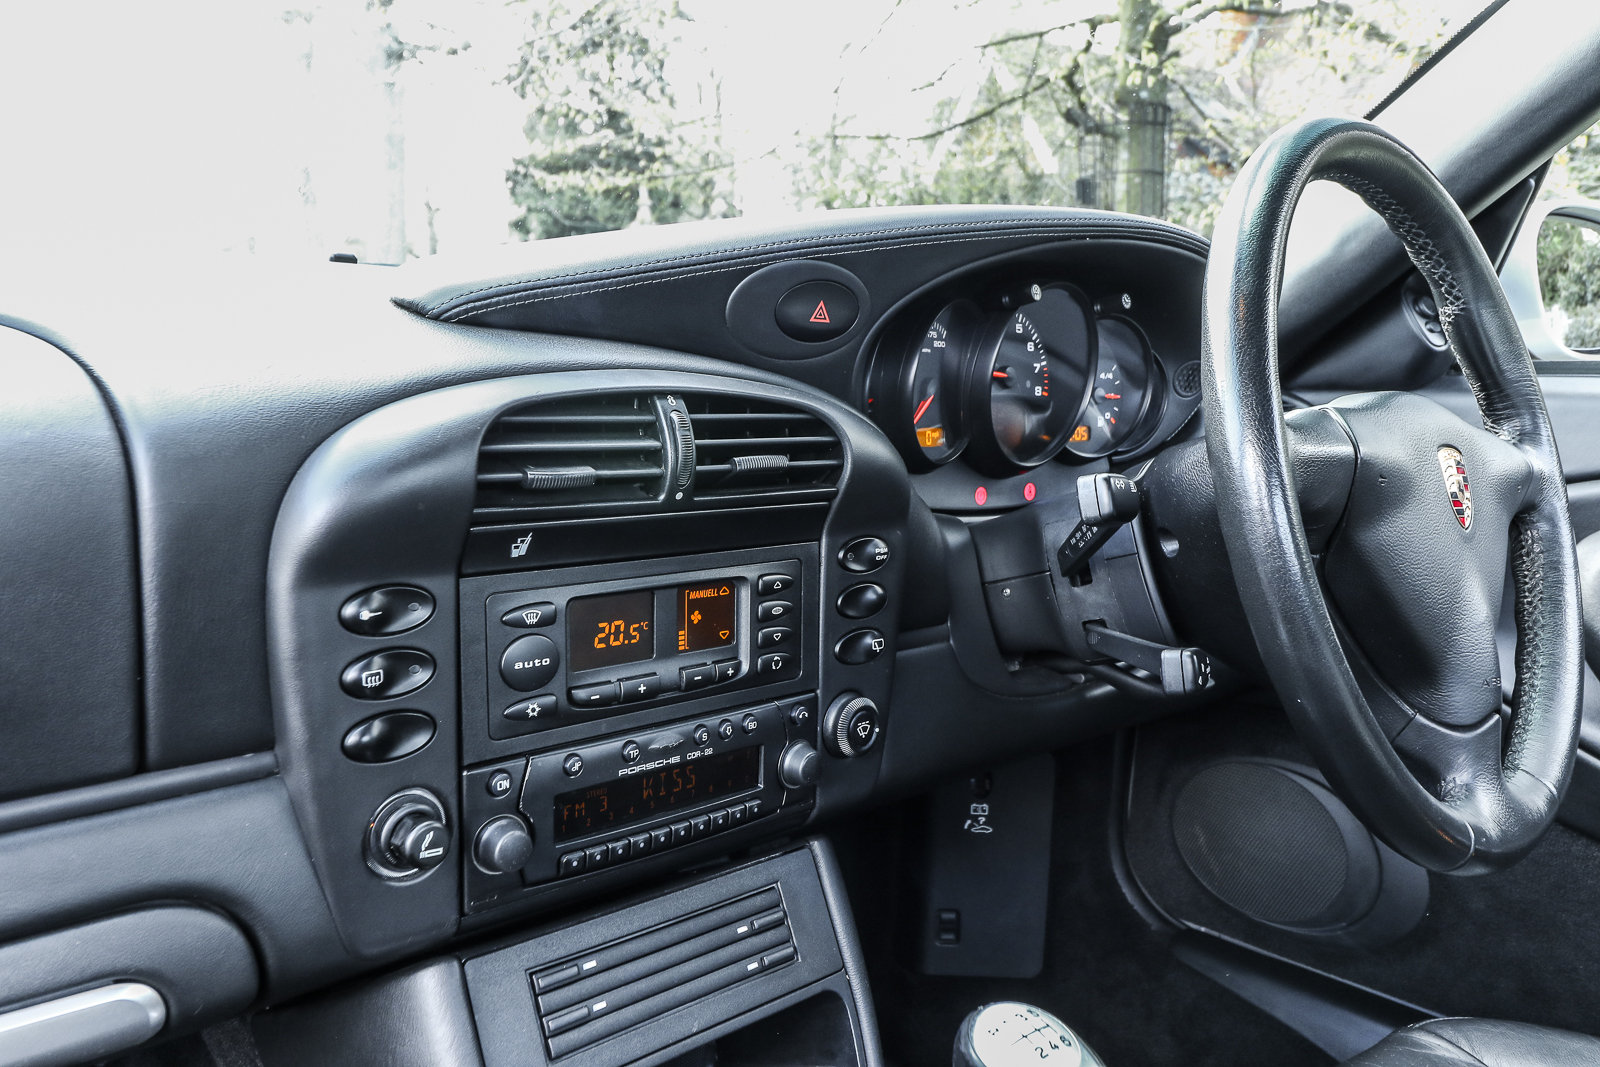 2002 Porsche 911 Carrera 4S 6-Speed Manual 996 FSH For Sale (picture 6 of 6)